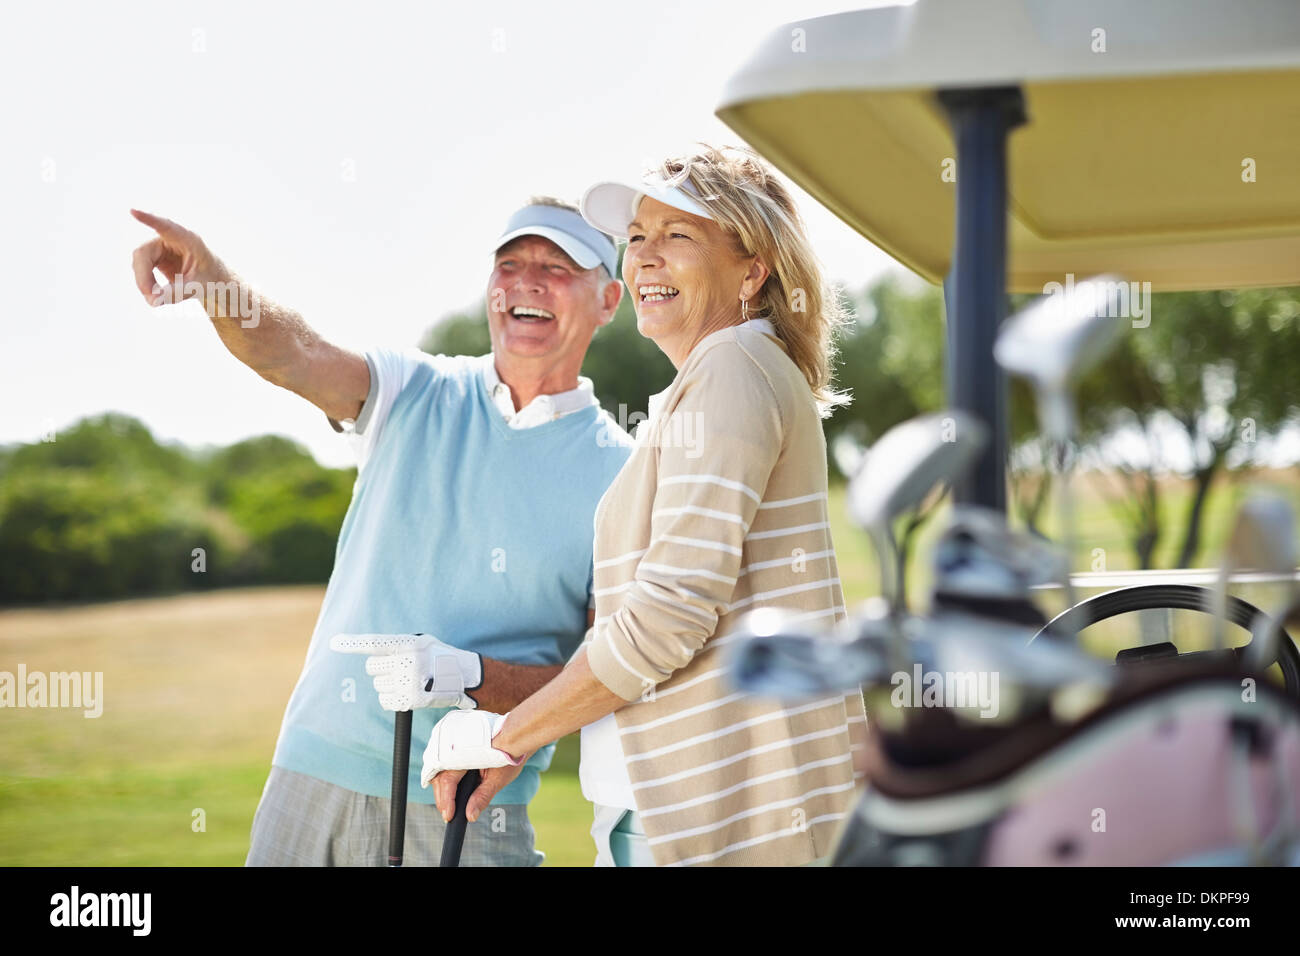 Senior couple standing next to golf cart - Stock Image